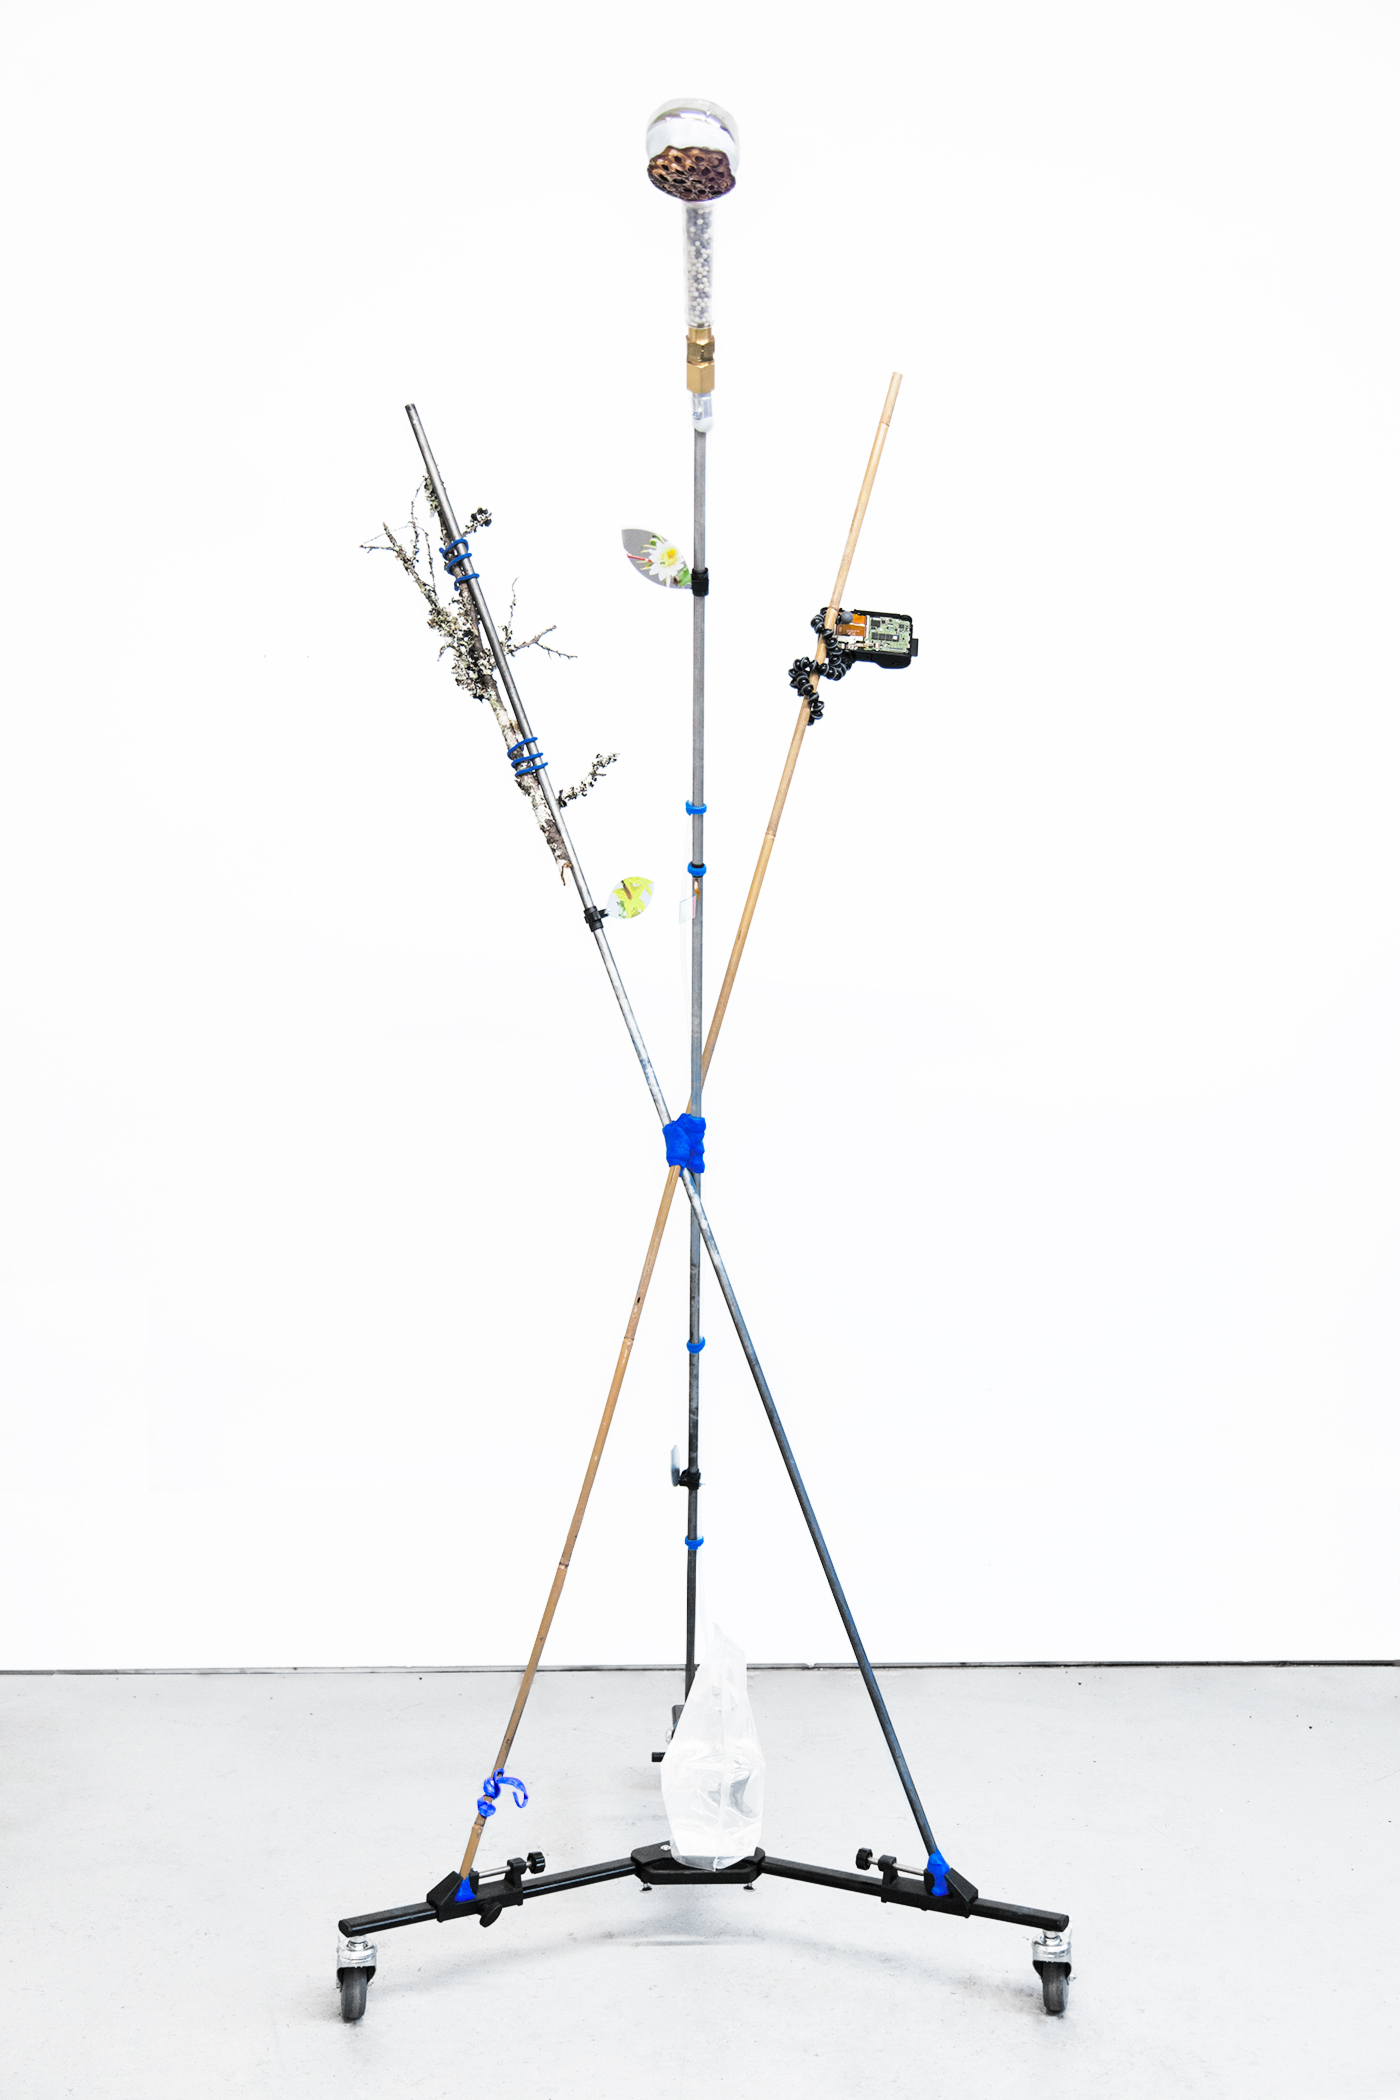 Carson Fisk-Vittori   Weather pollination techniques: out of human visible range , 2016  UV prints on aluminum, aluminum poles, bamboo, hand-formed plastic, lichen covered branch, lotus seed pod, digital camera, flexible tripod, negative ion showerhead, metal and plastic hardware and fixtures, velcro, water,78 x 36 x 36 inches